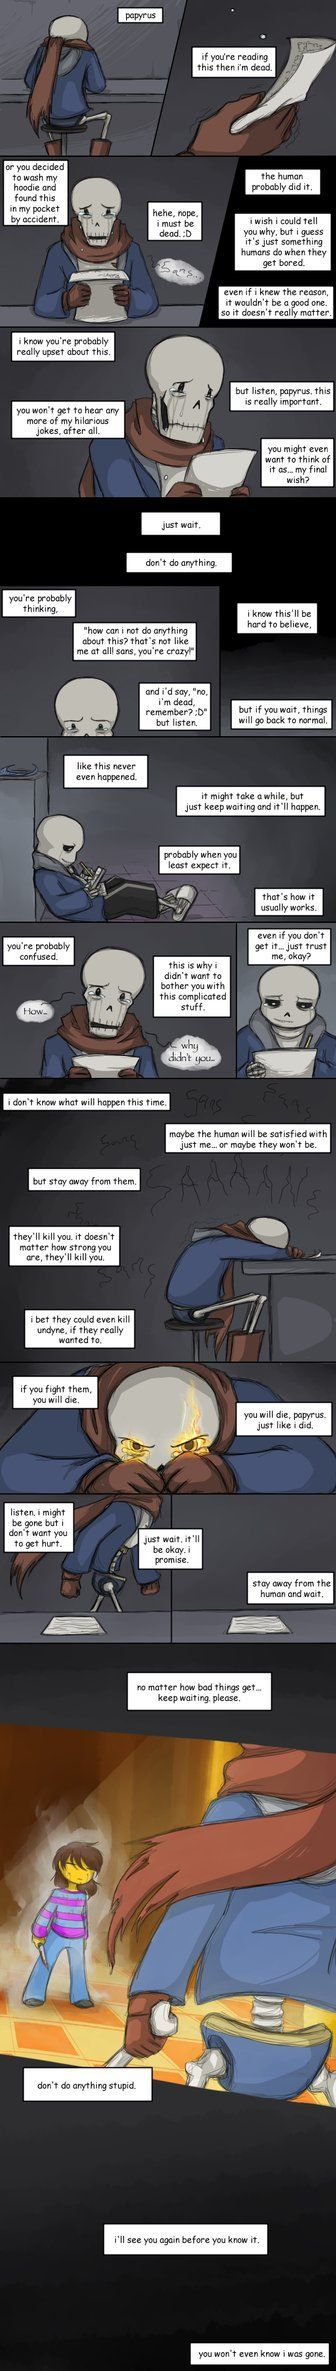 There's an enemy called Shyren that you can hum with to start a concert. If Papyrus is alive, then Sans will show up to sell tickets to the concert. If Papyrus is dead, instead a hooded figure will...